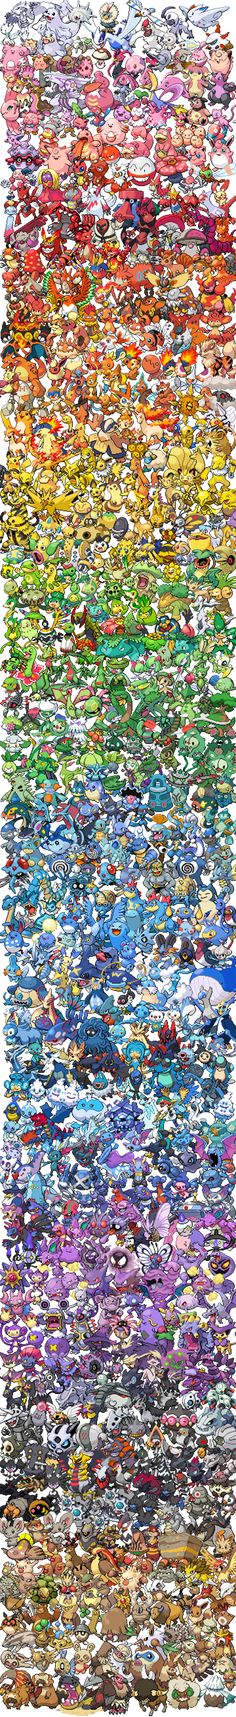 I don't even watch Pokemon and this is beautiful <------ HOLD UP A…